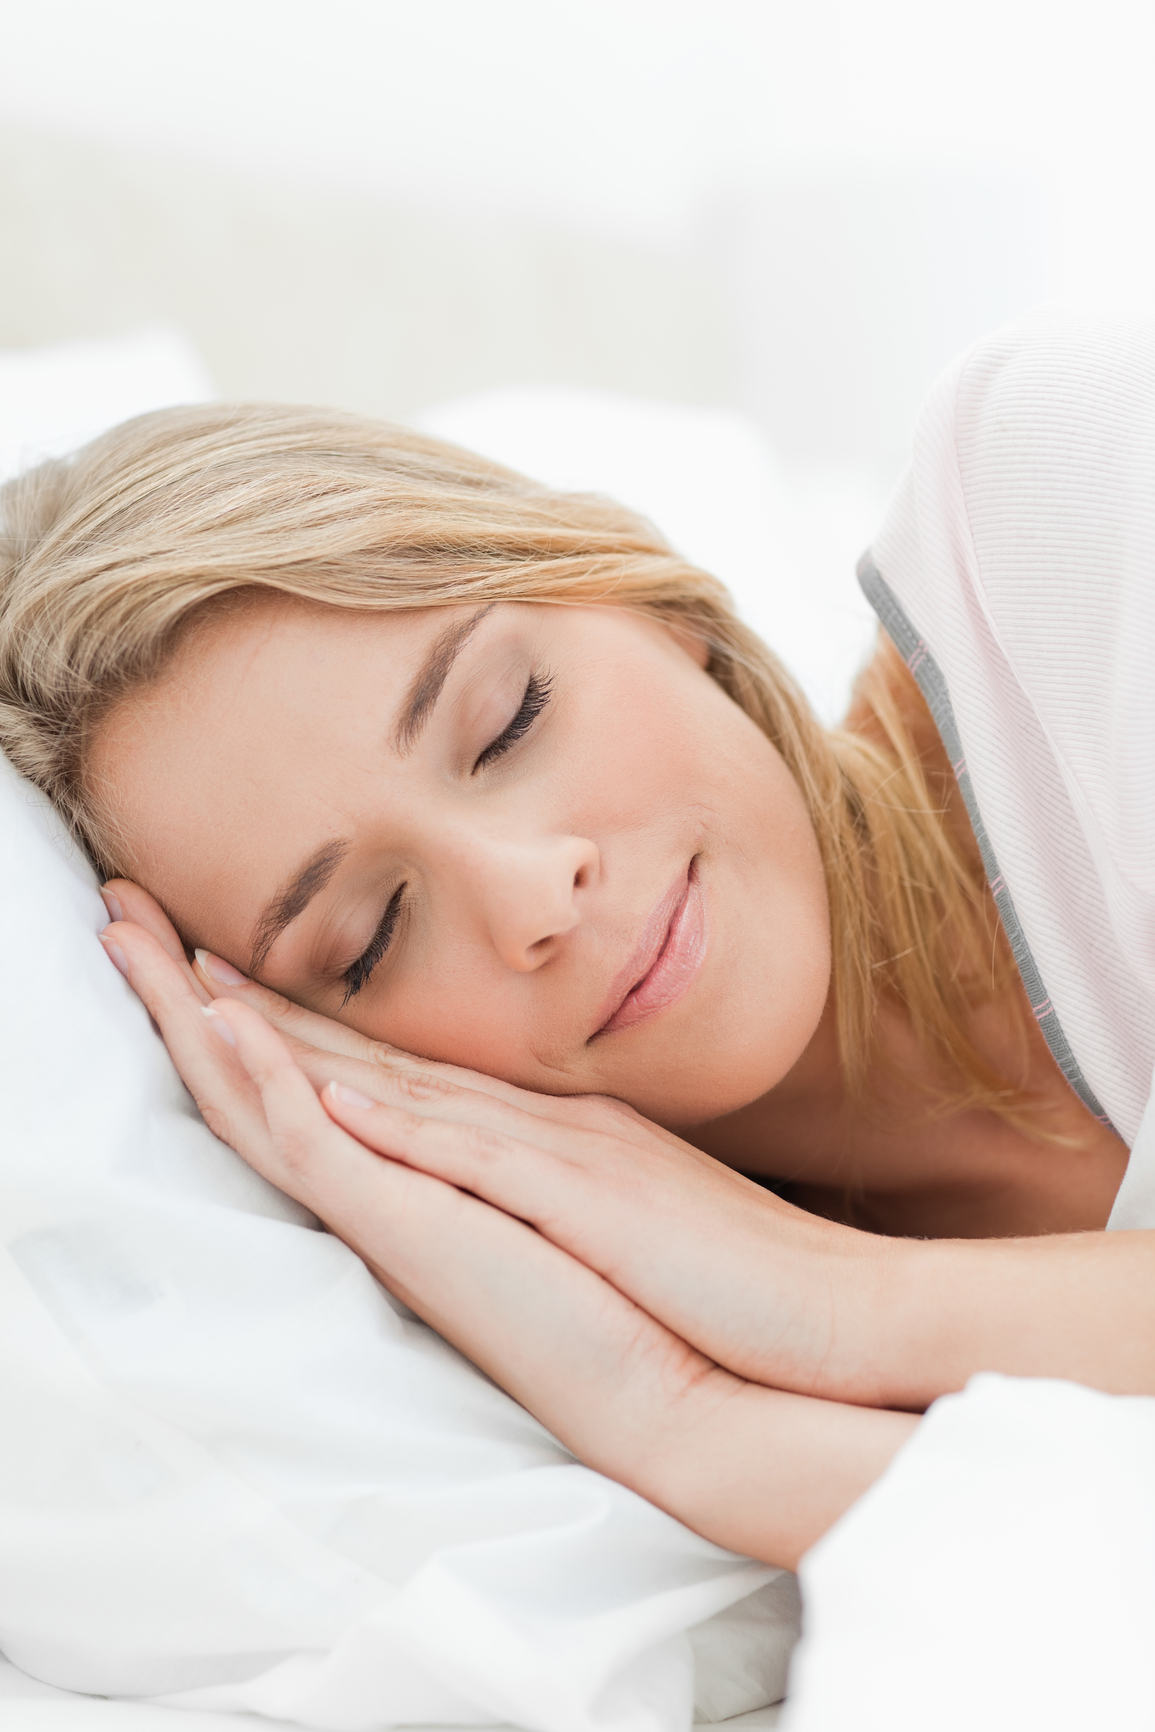 Close up, woman asleep with hands beside her head resting on a pillow